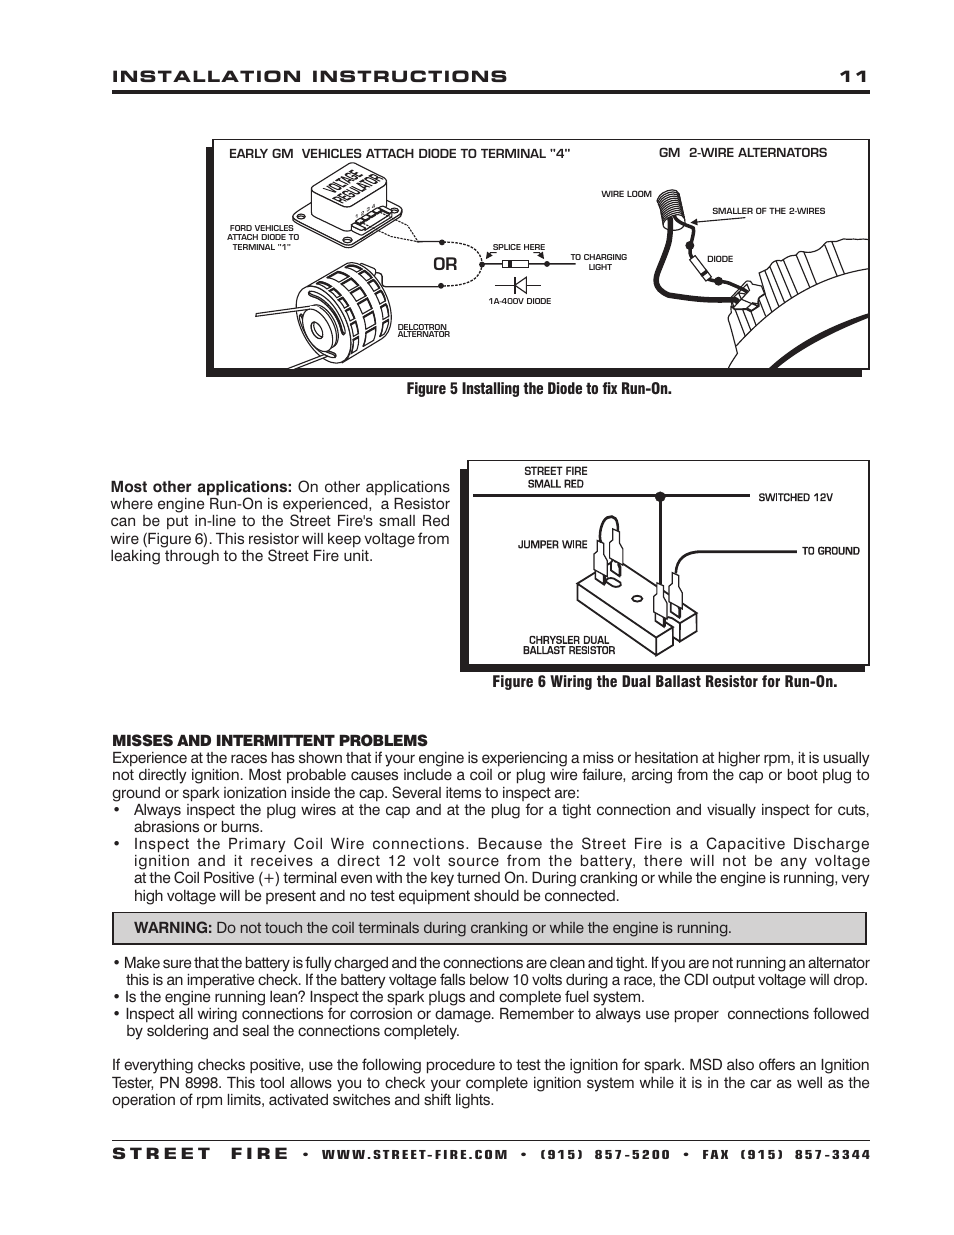 hight resolution of msd 5520 street fire ignition control installation user manual page 11 12